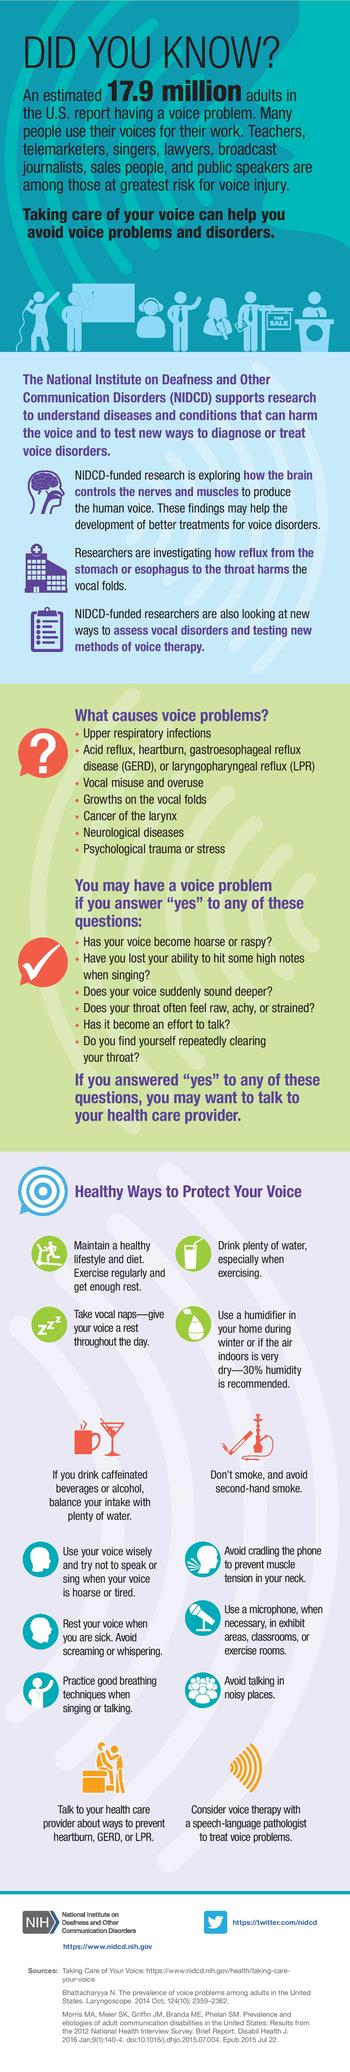 An infographic summarizing information and statistics about voice problems in U.S. adults.